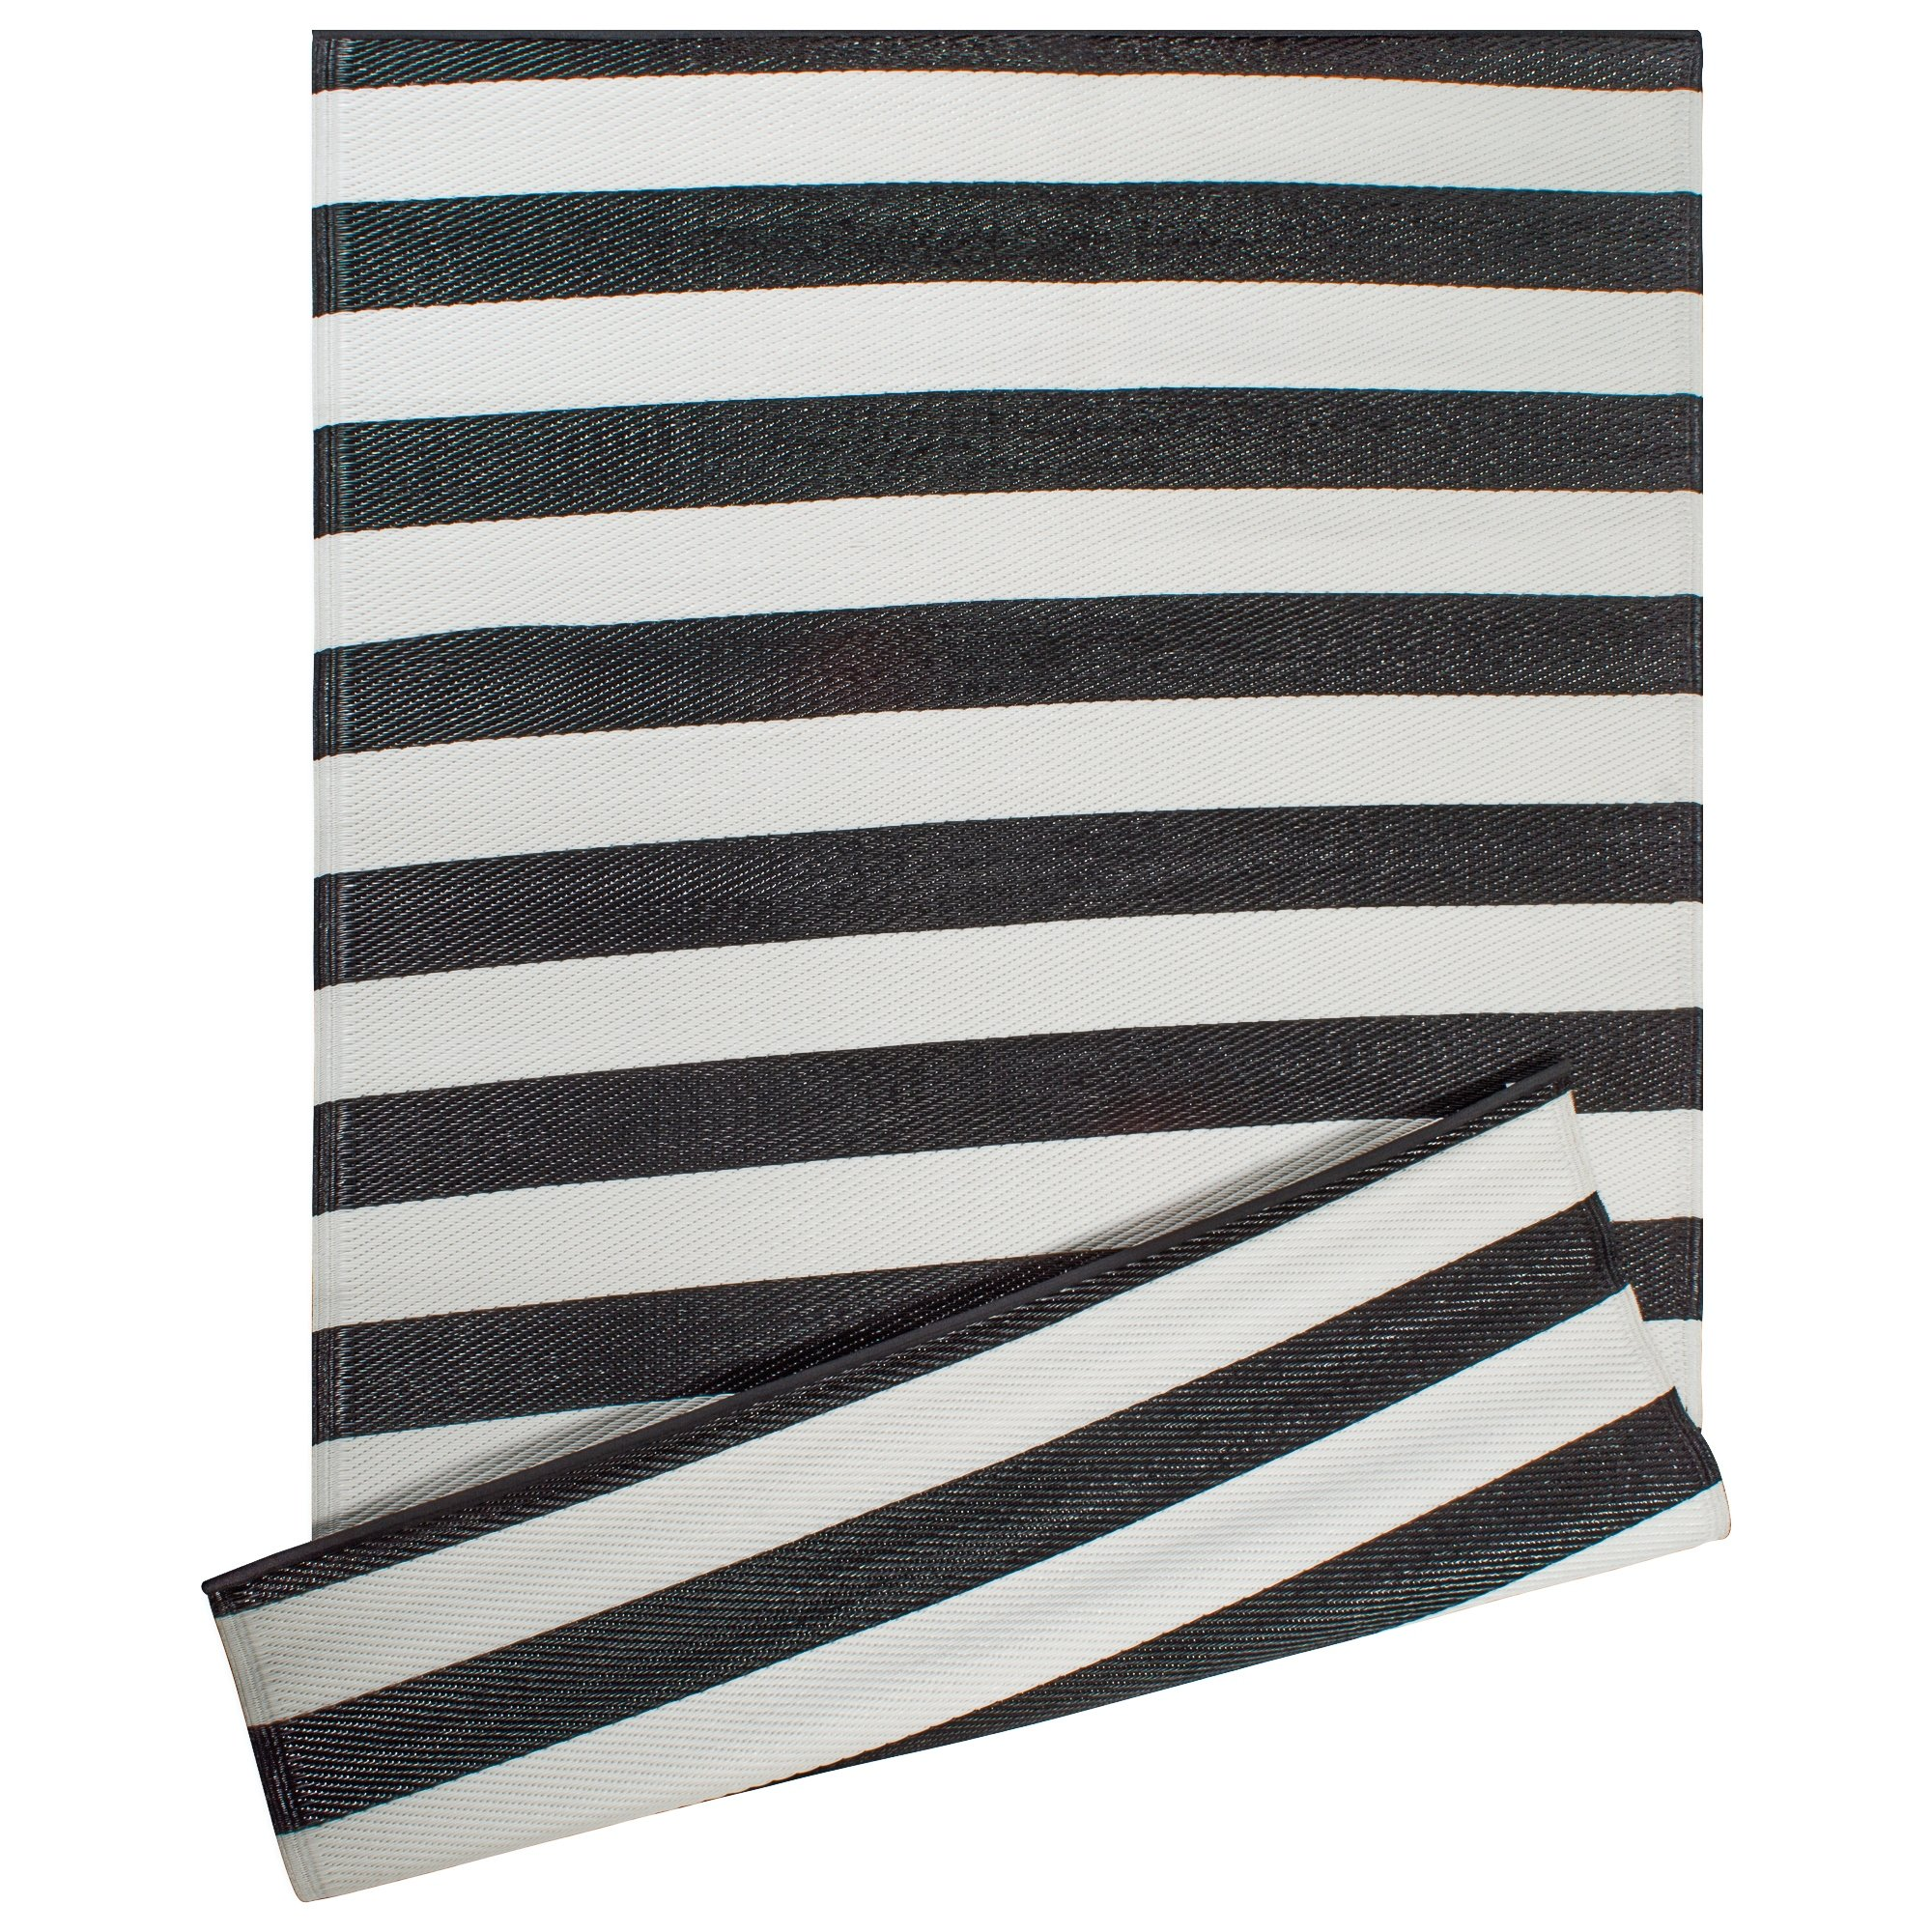 DII Contemporary Indoor/Outdoor Lightweight Reversible Fade Resistant Area Rug, Great for Patio, Deck, Backyard, Picnic, Beach, Camping, BBQ, 4 x 6', Black/White 3.5'' Stripe